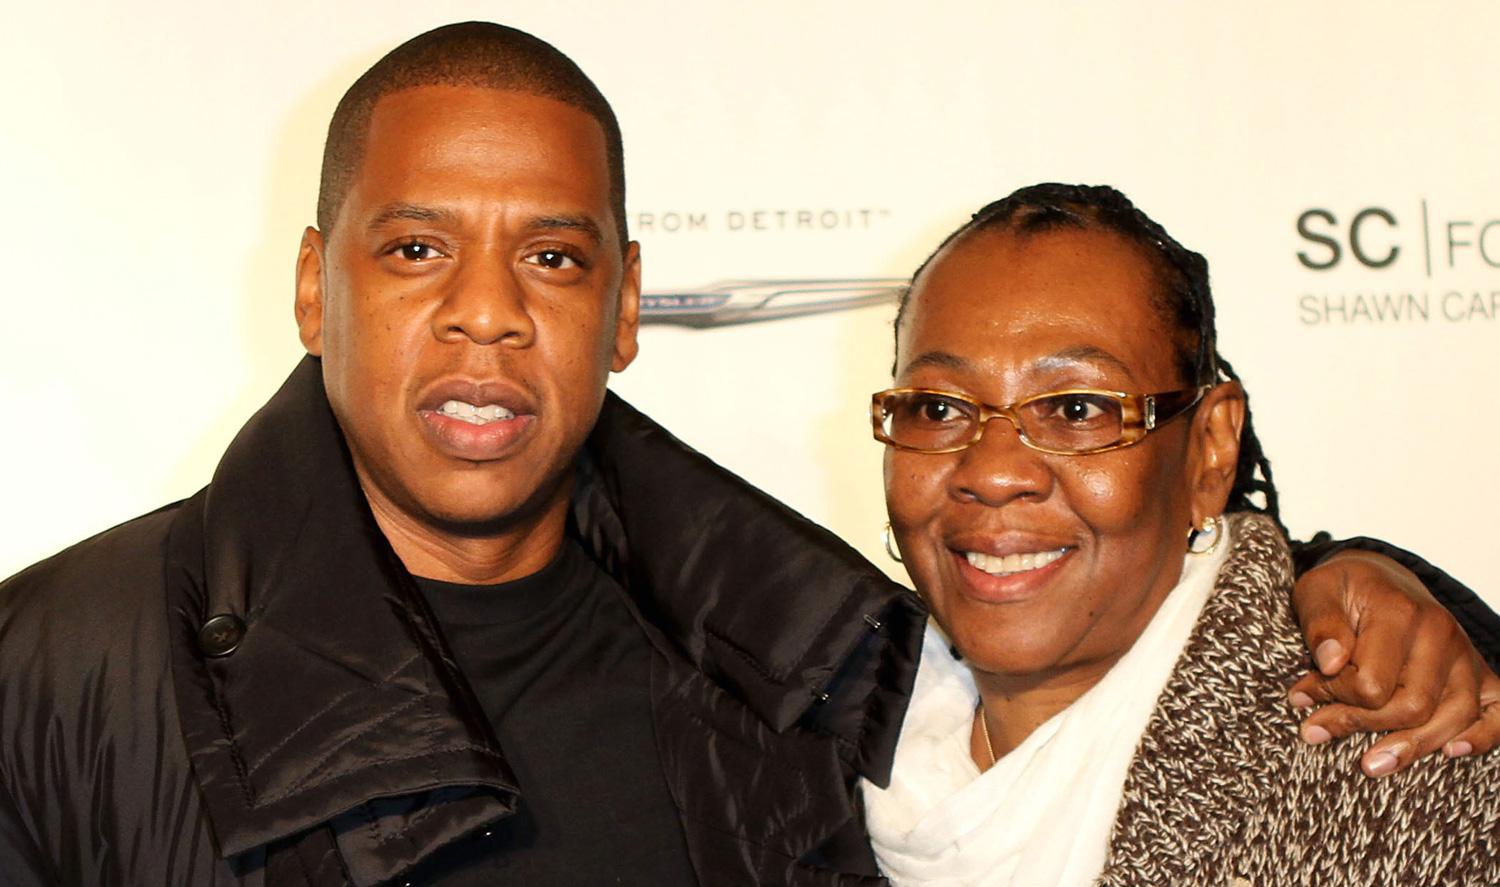 JAY-Z's Mom Gloria Carter Comes Out as a Lesbian in 'Smile ...